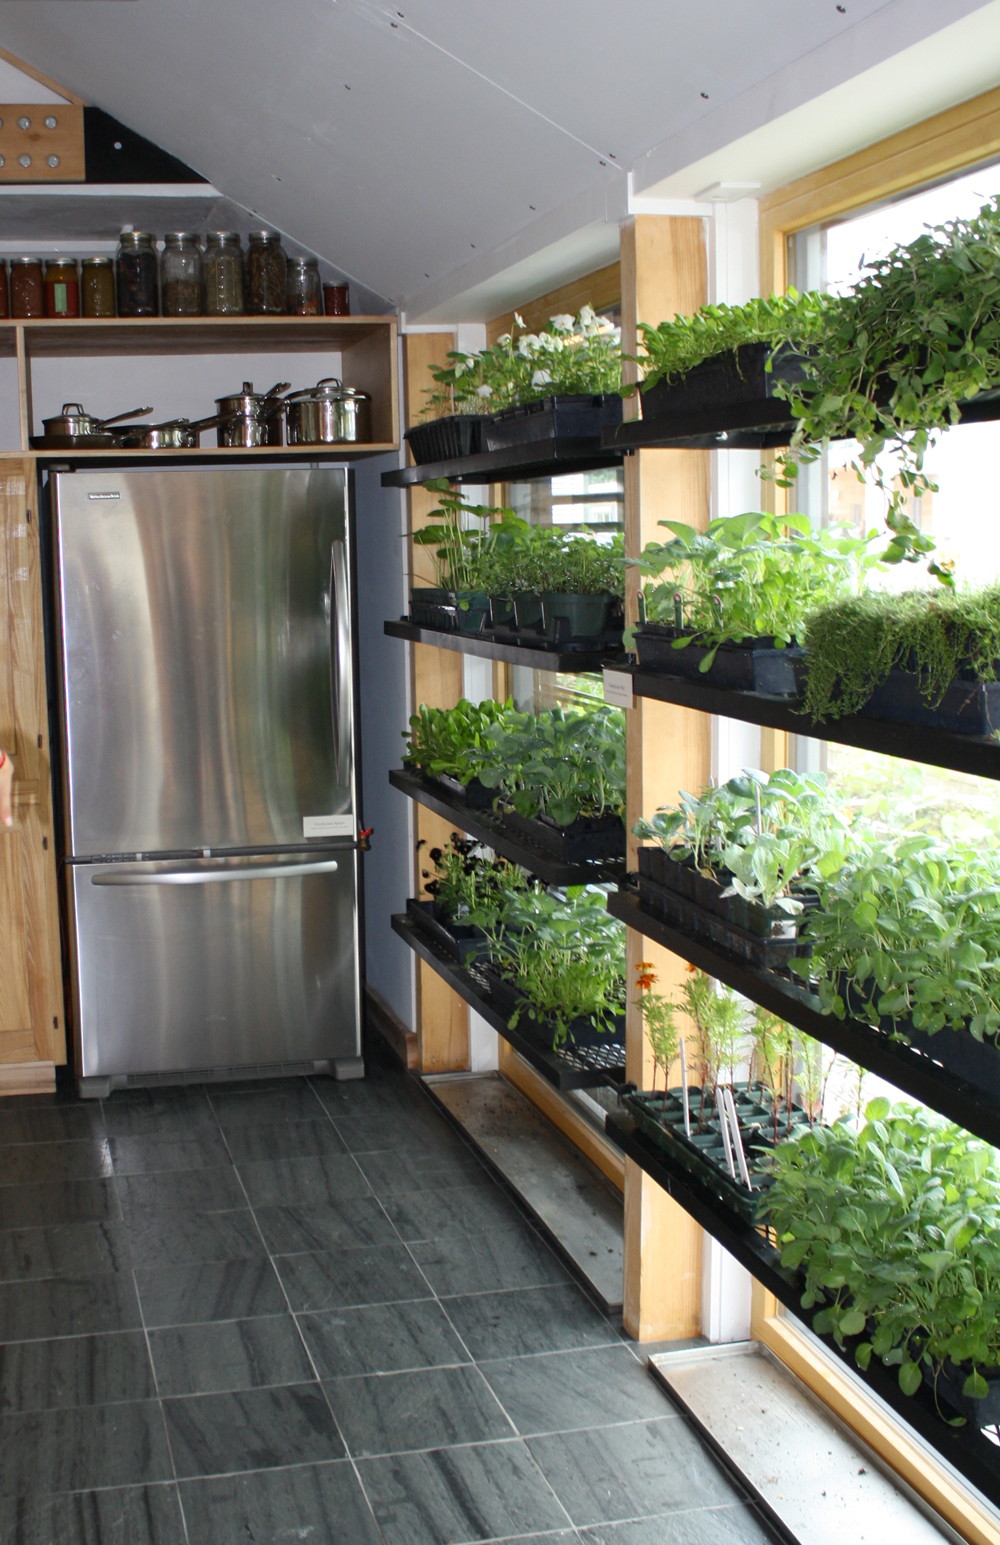 Truexcullins blog solar decathlon review day 2 products for House and garden kitchen photos